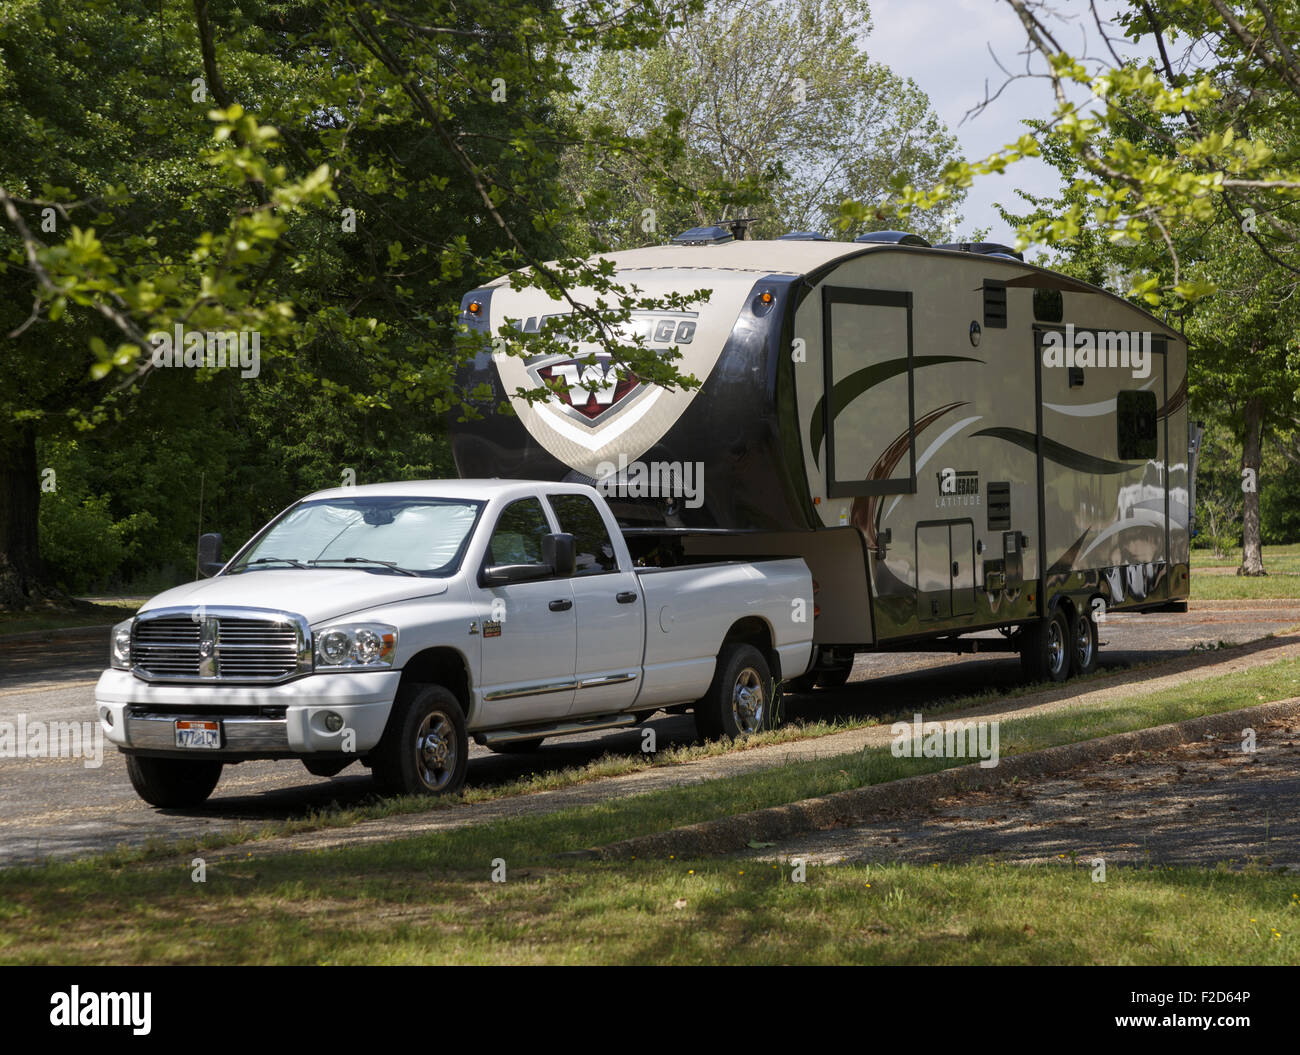 2008 Dodge Ram 3500 long bed pickup with a Winnebago 33ck fifth wheel trailer hitched up parked in a leafy rest - Stock Image